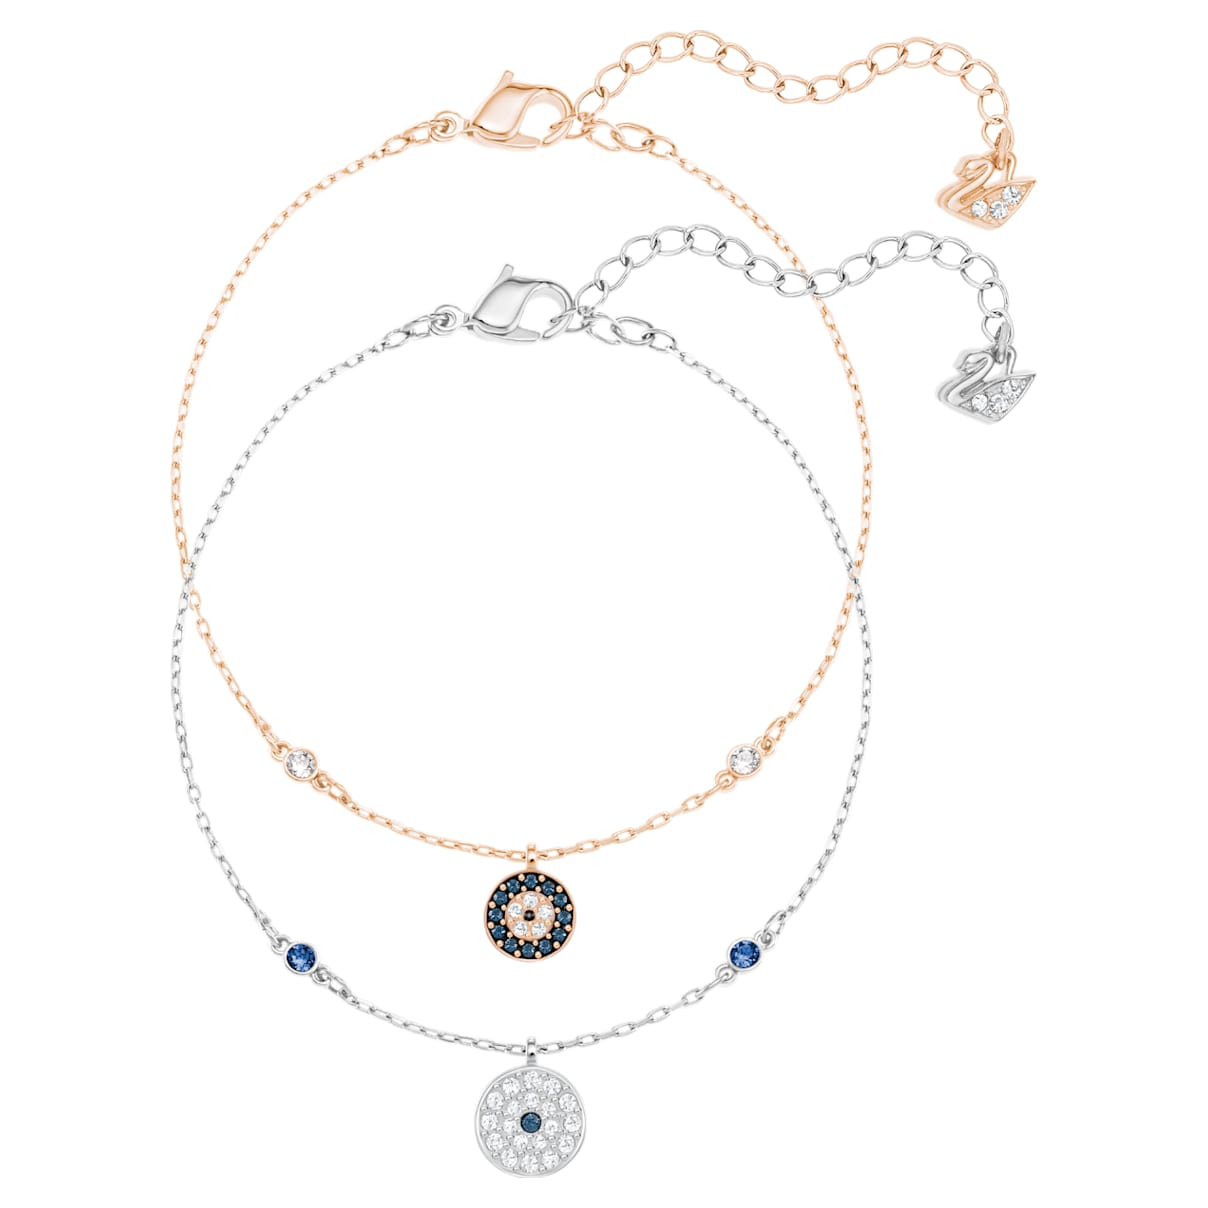 Crystal Wishes Evil Eye Set, Multi-colored, Mixed metal finish